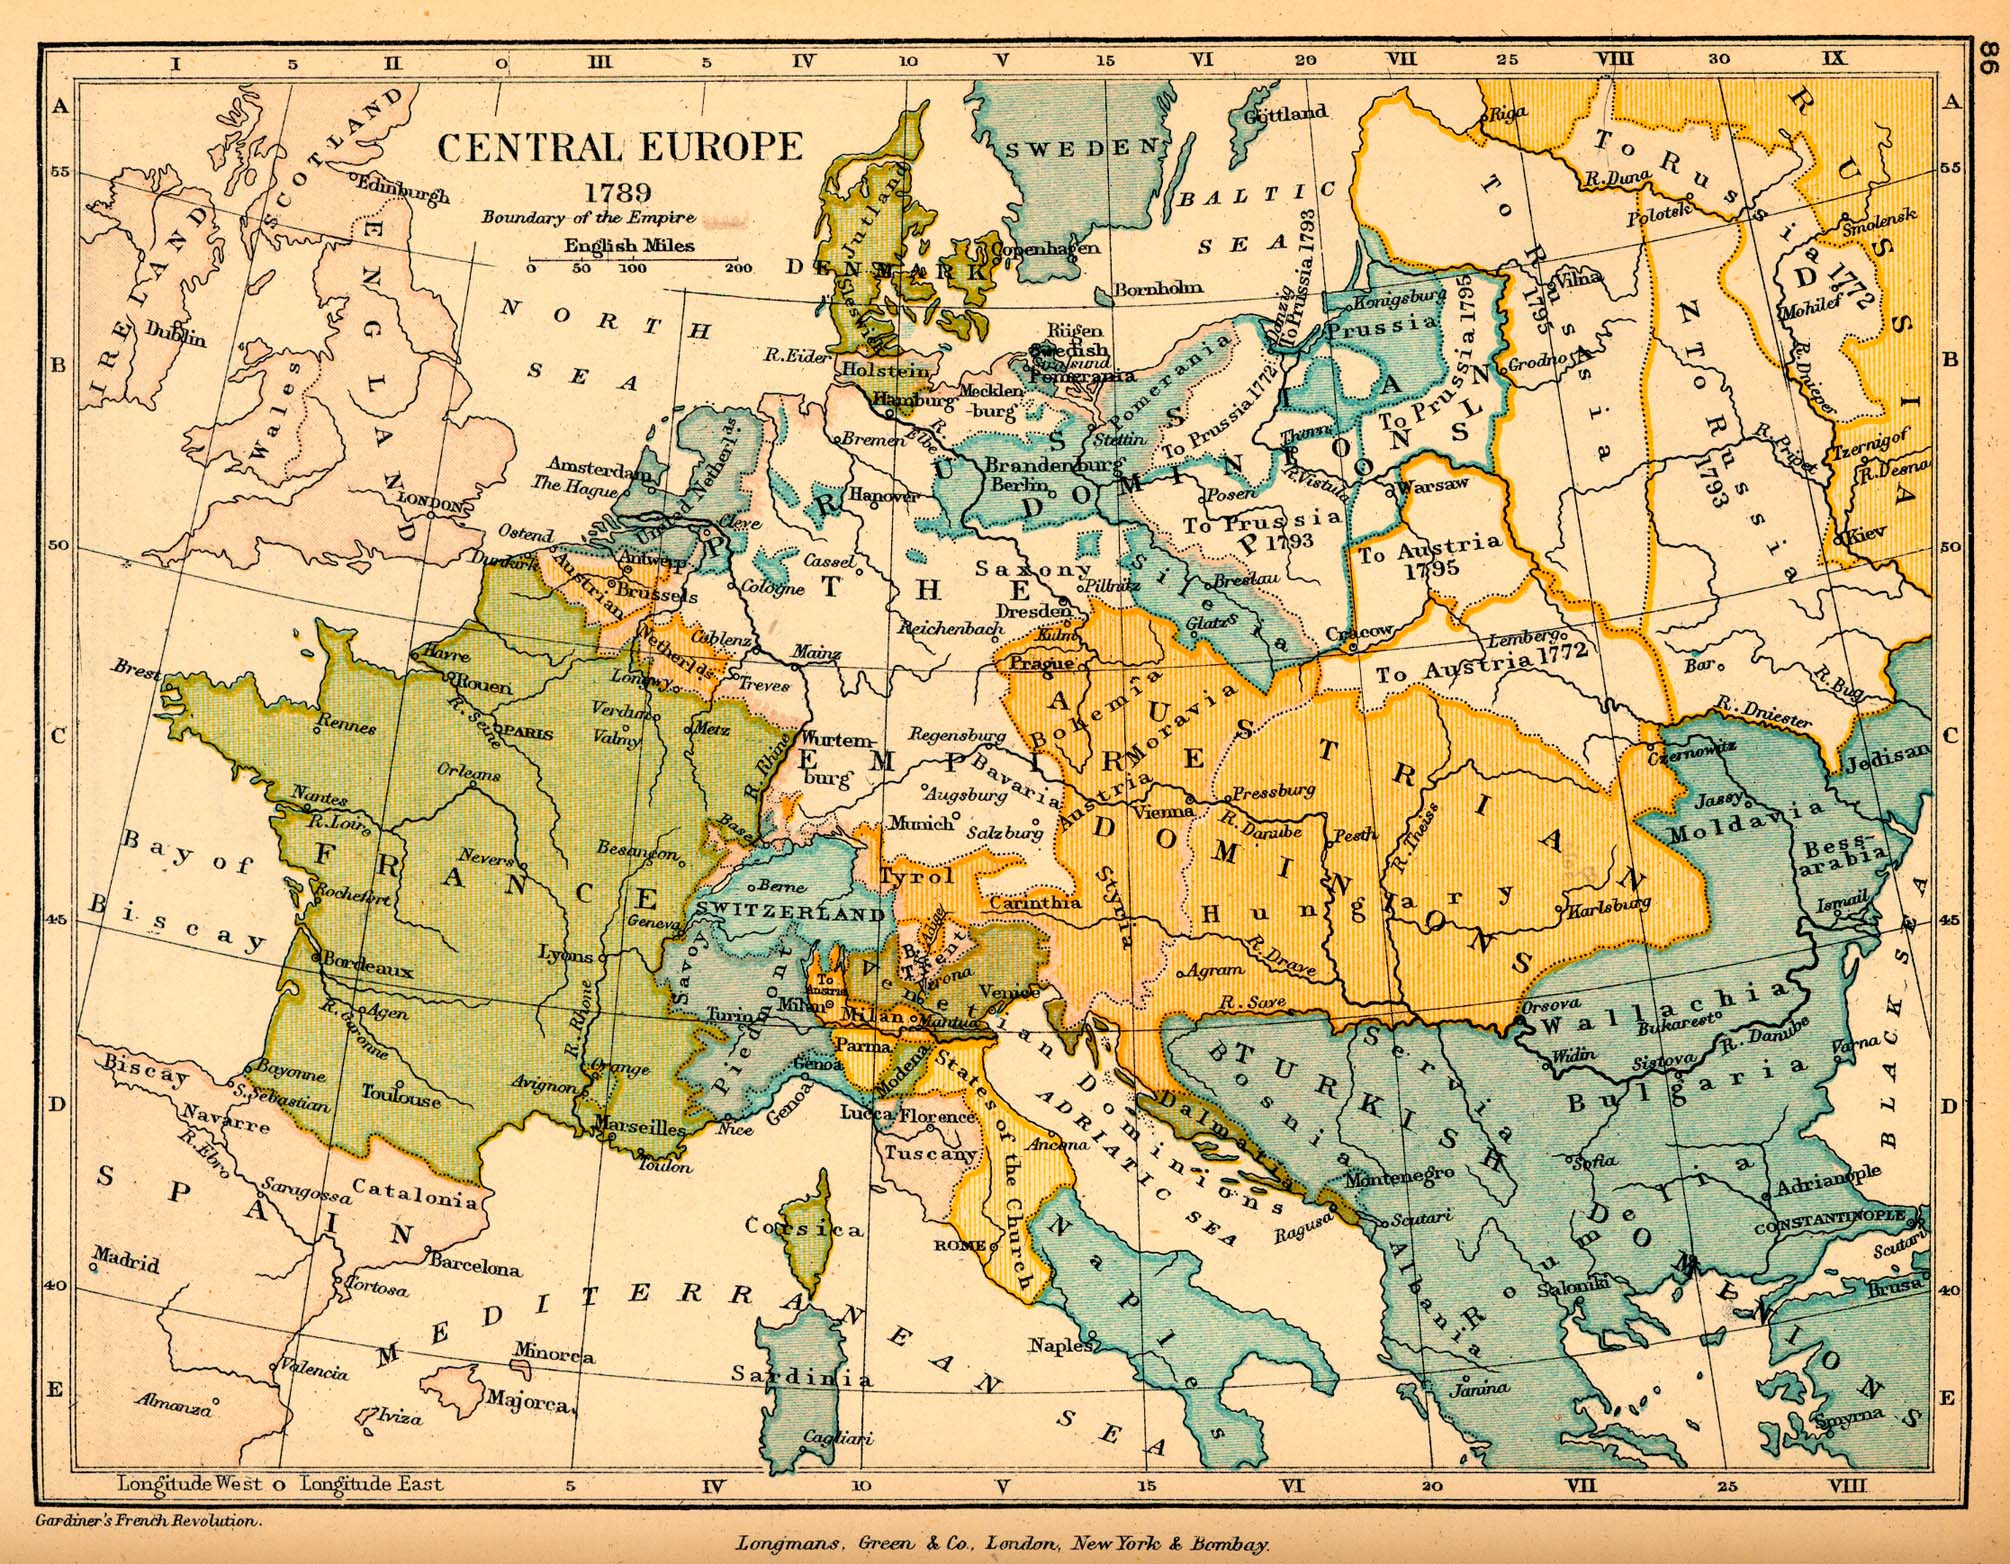 Map of Central Europe 1789